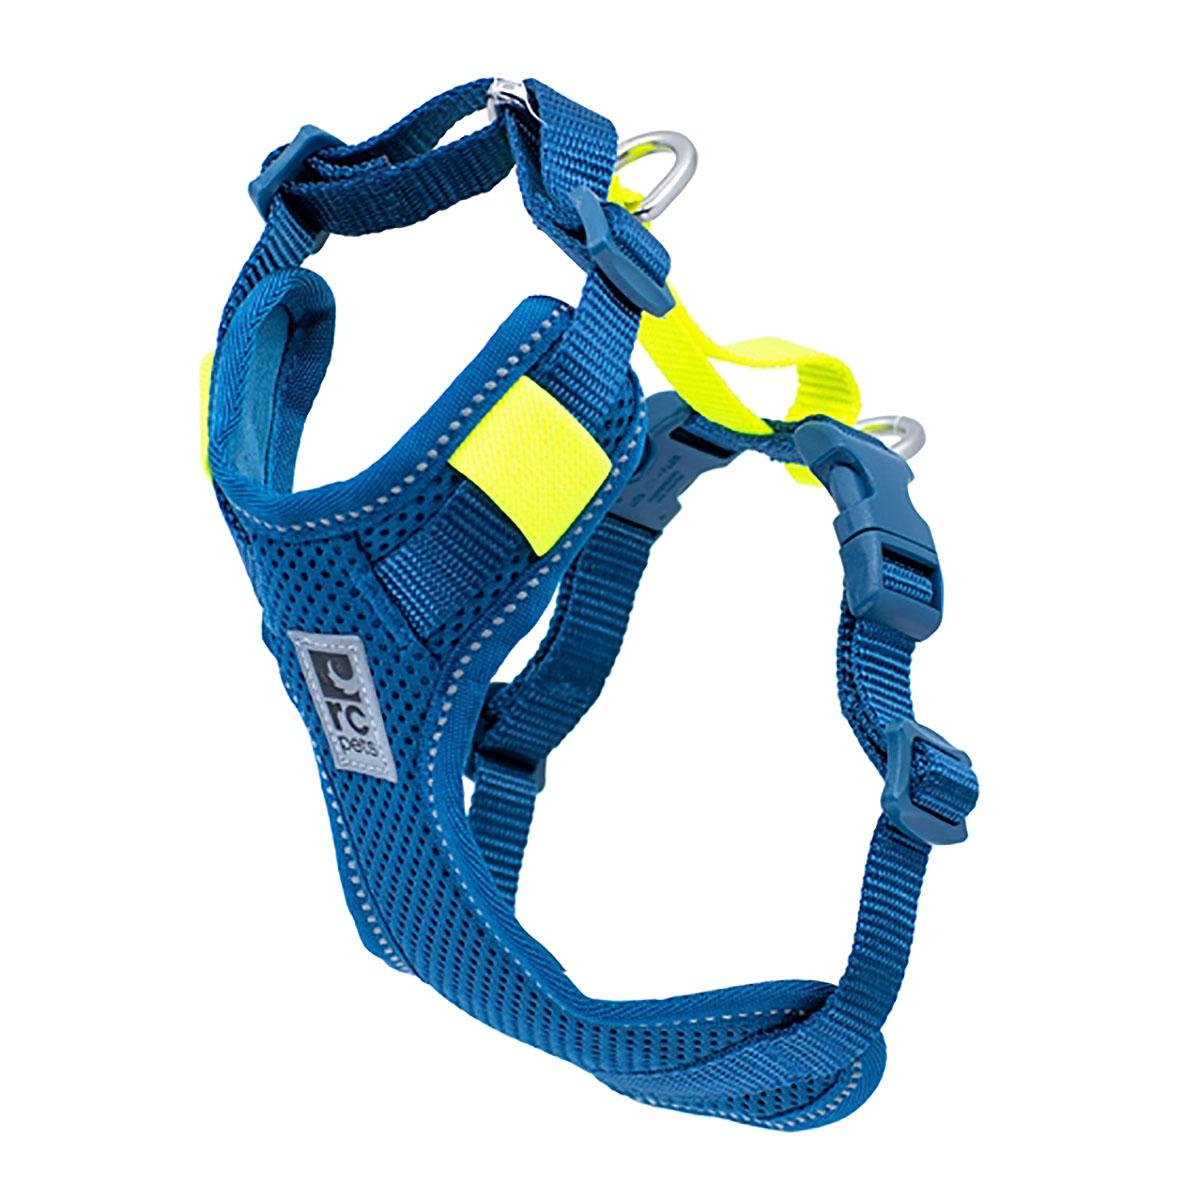 Moto Control Dog Harness - Arctic Blue/Tennis